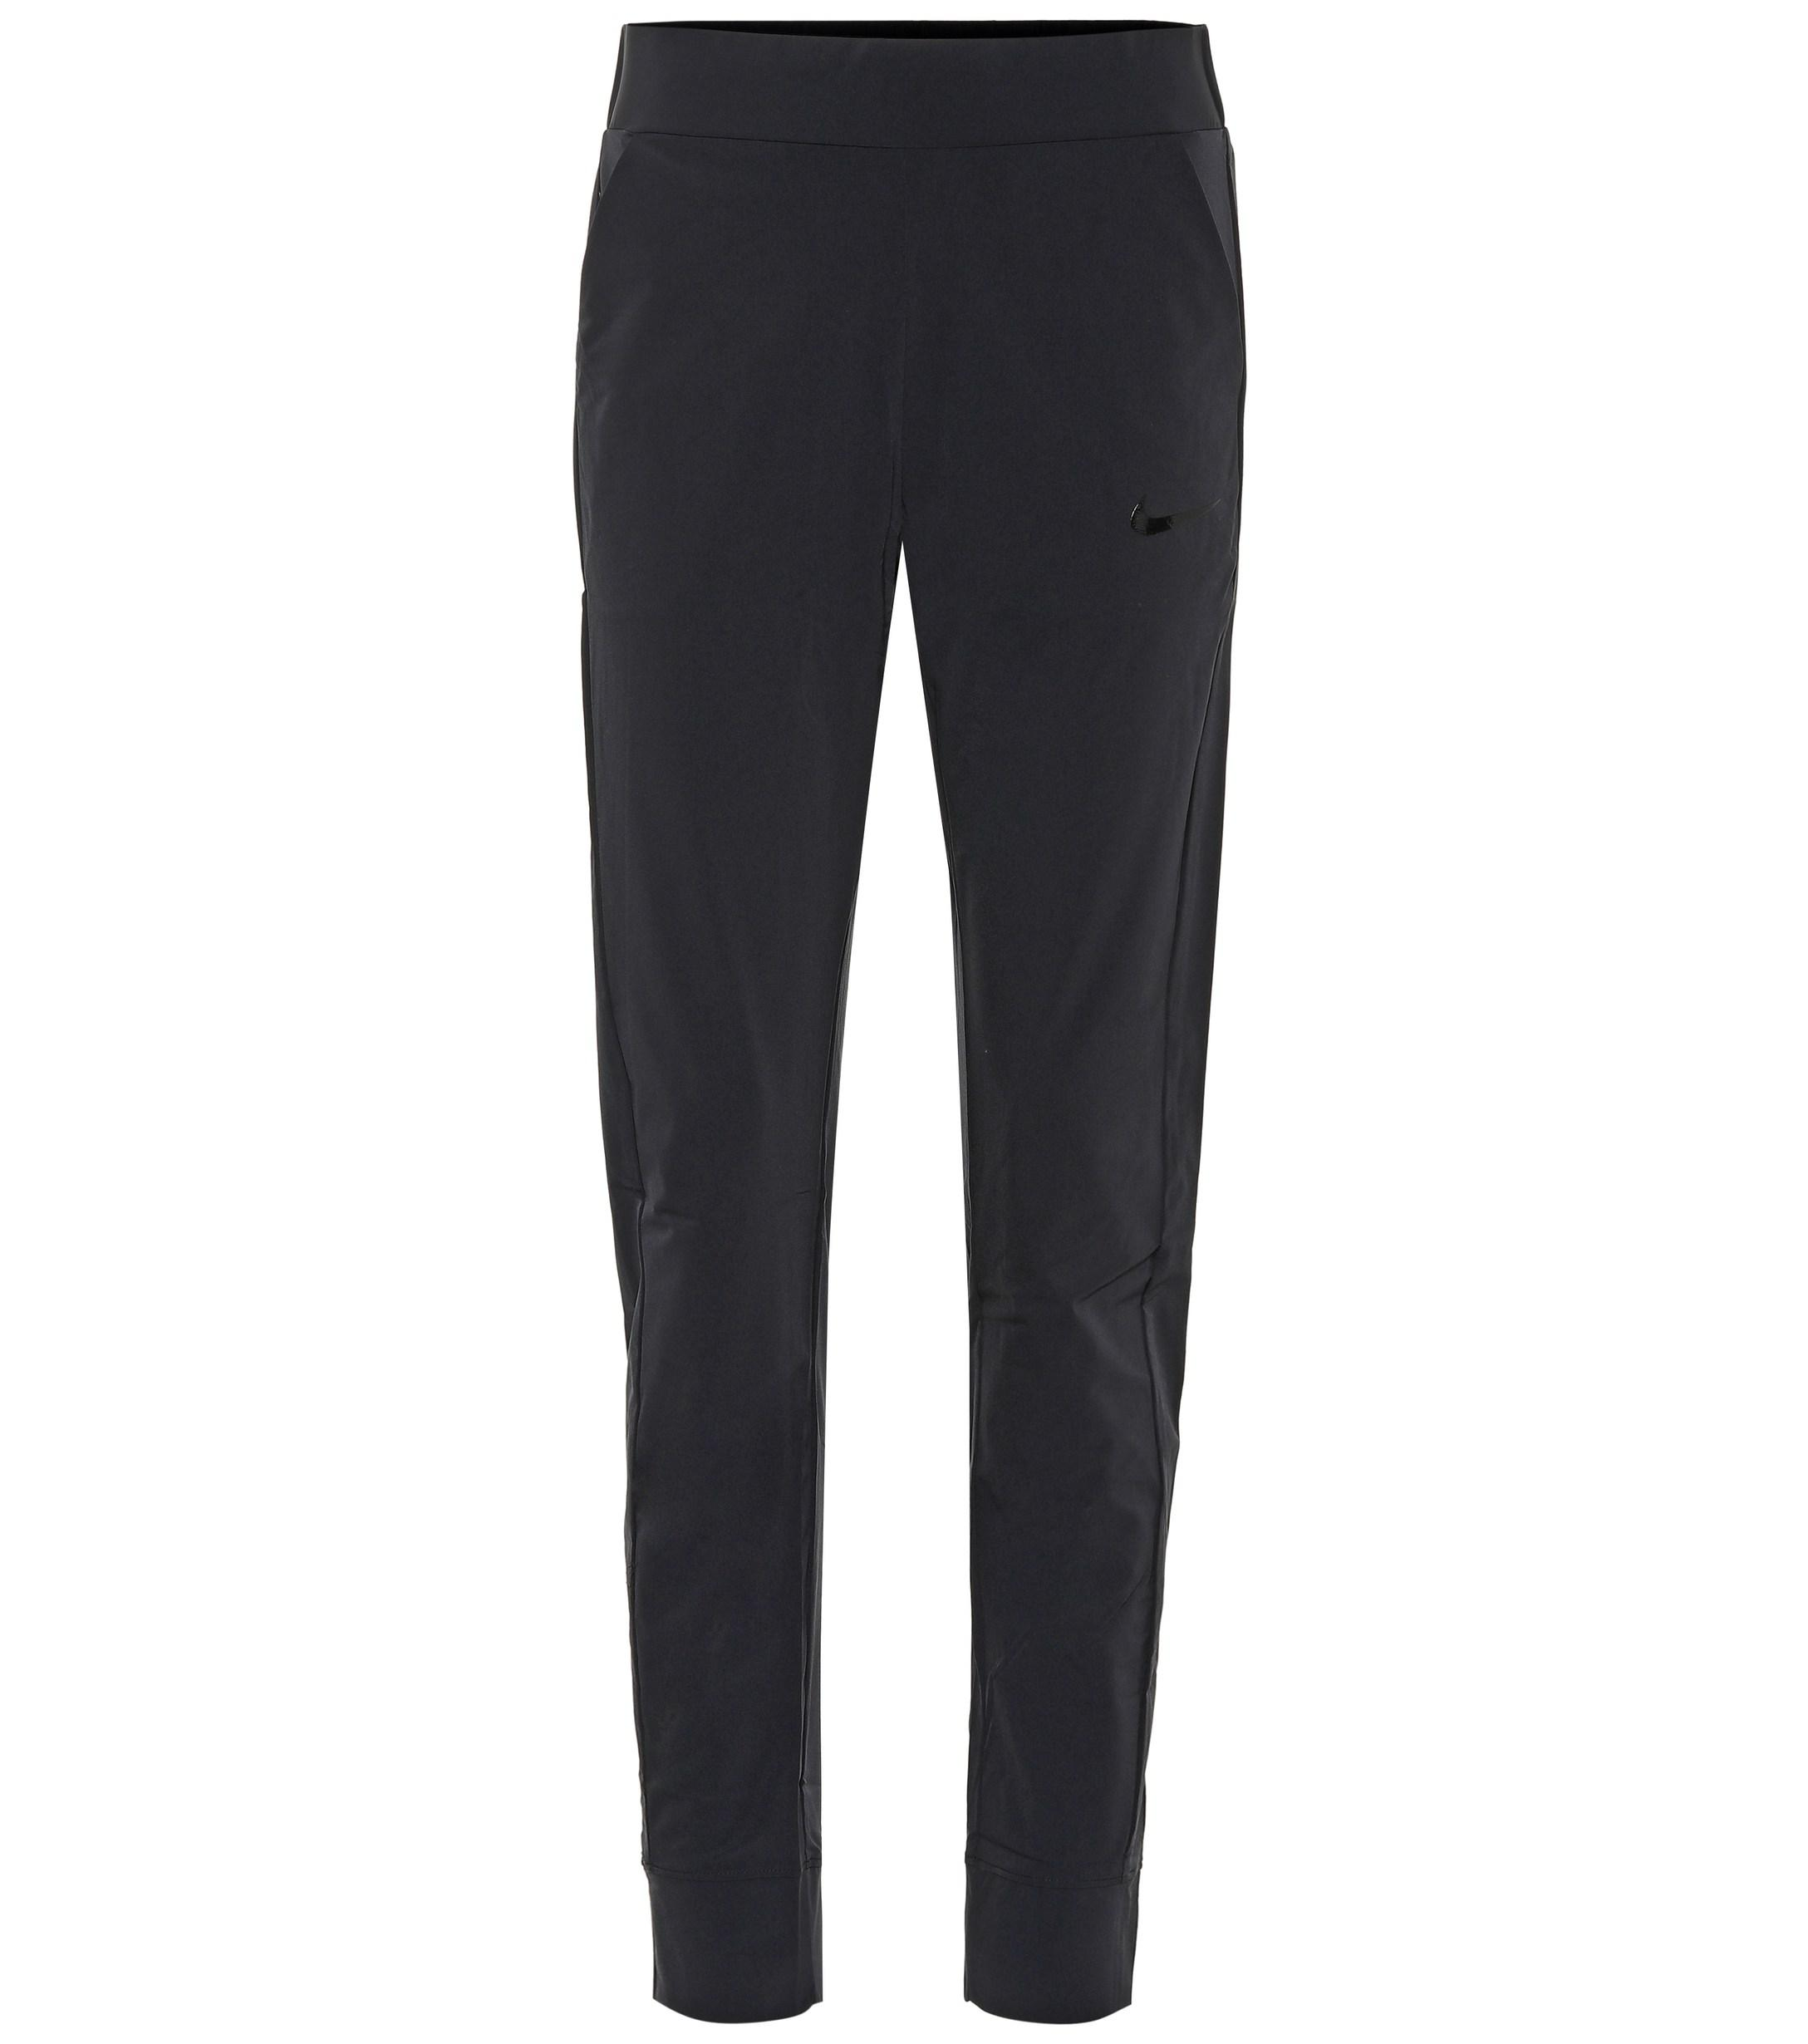 9daba57e9c44 Nike Bliss Lux Mid-rise Training Pants in Black - Lyst